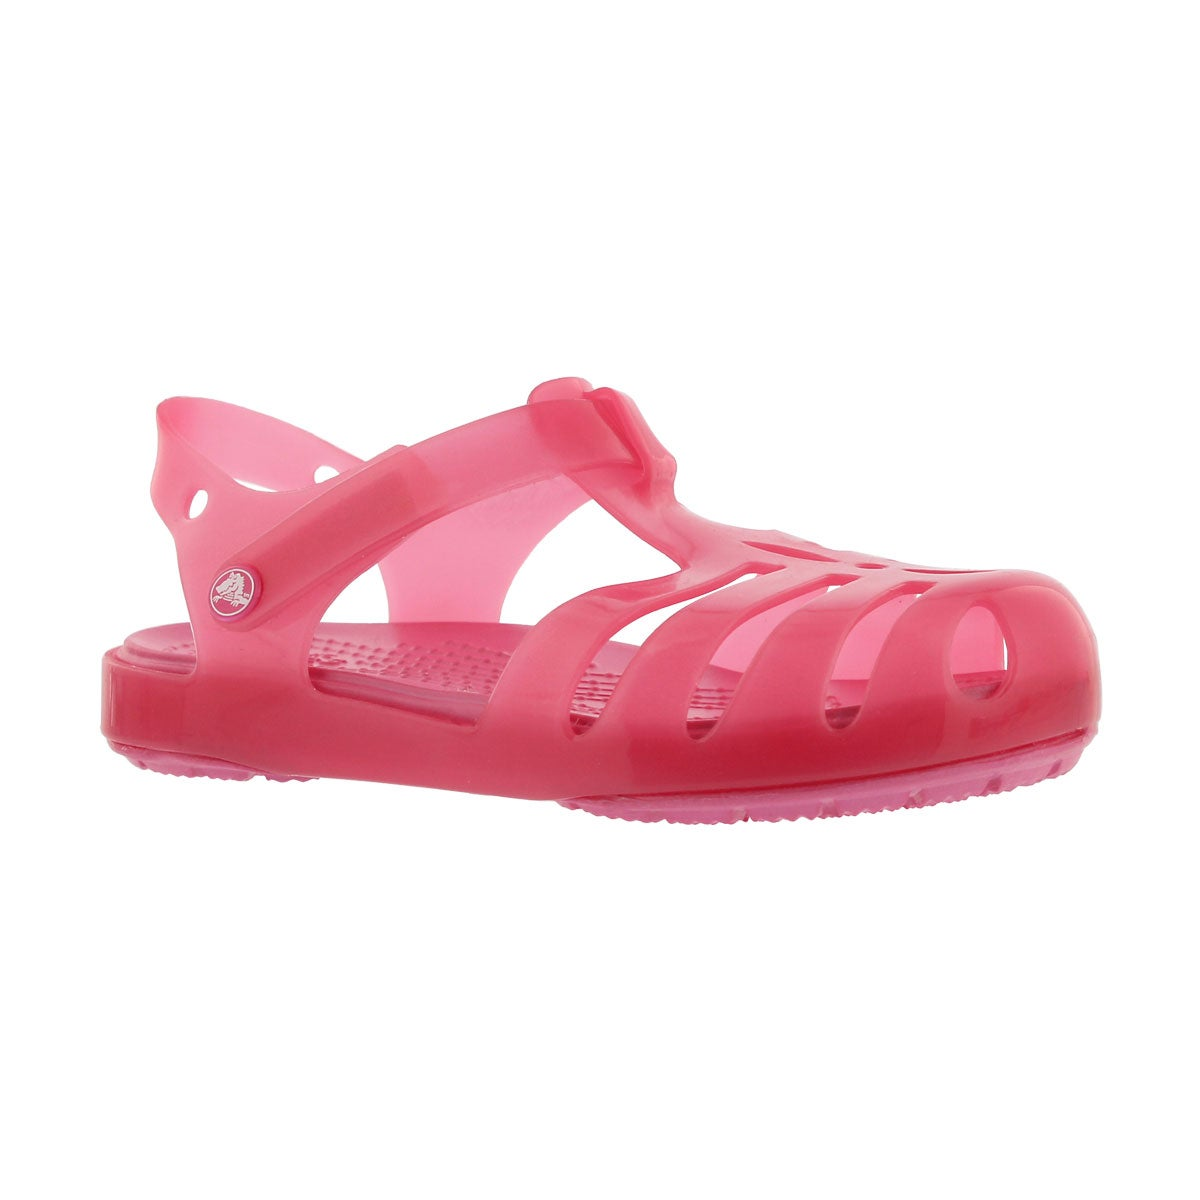 Girls' ISABELLA paradise pInk casual sandals